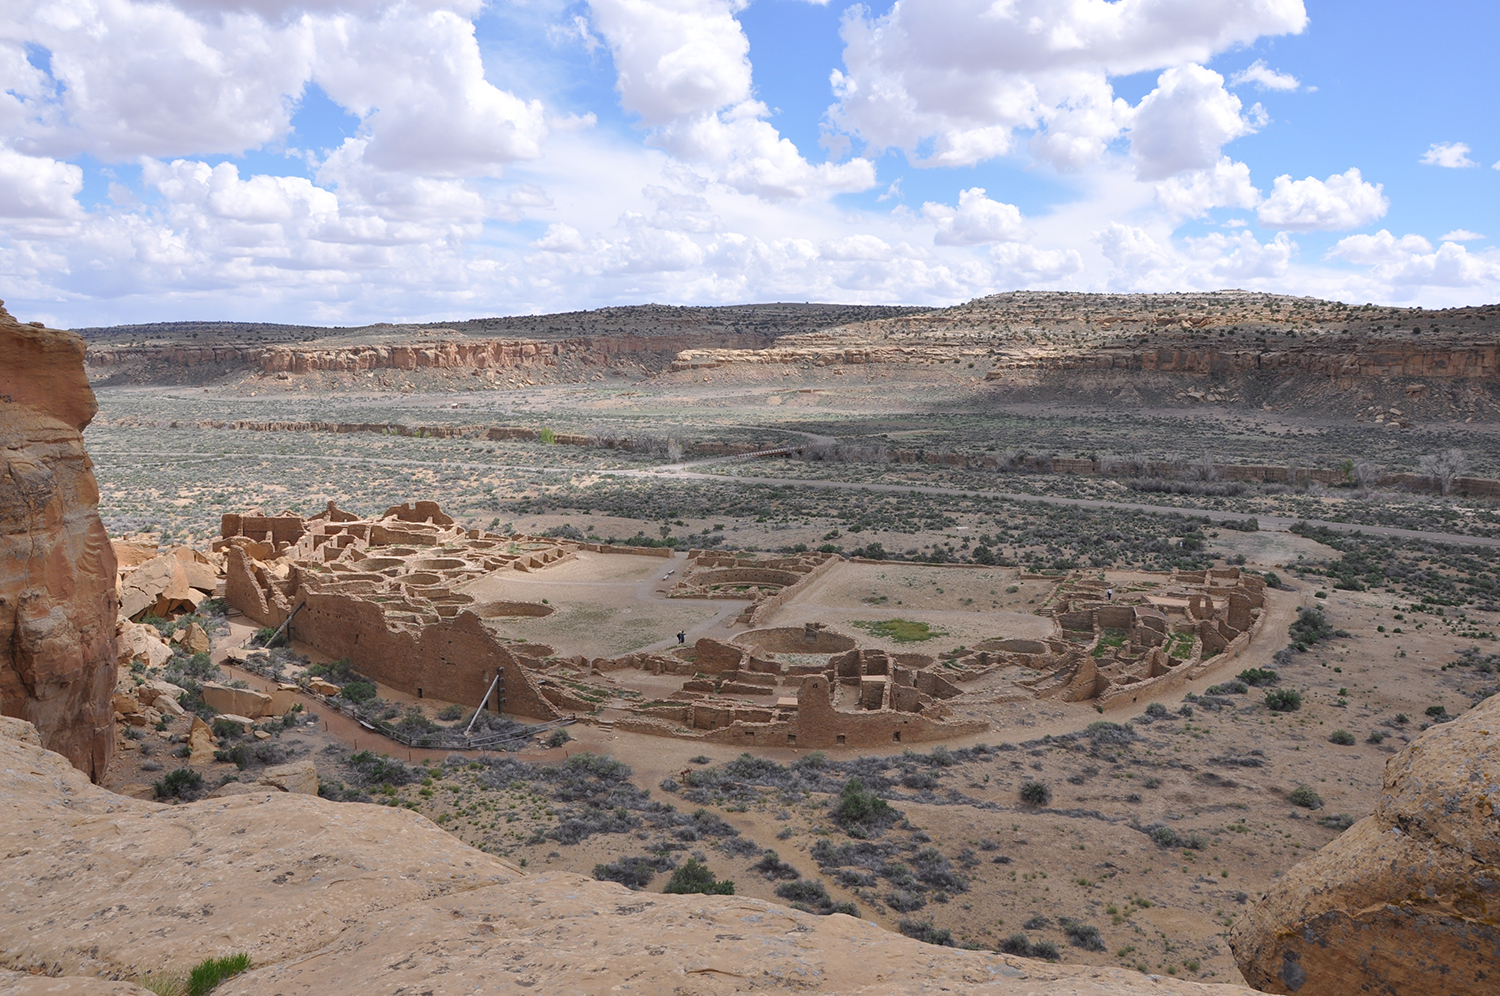 Radiocarbon dating and DNA show ancient Puebloan leadership in the maternal line